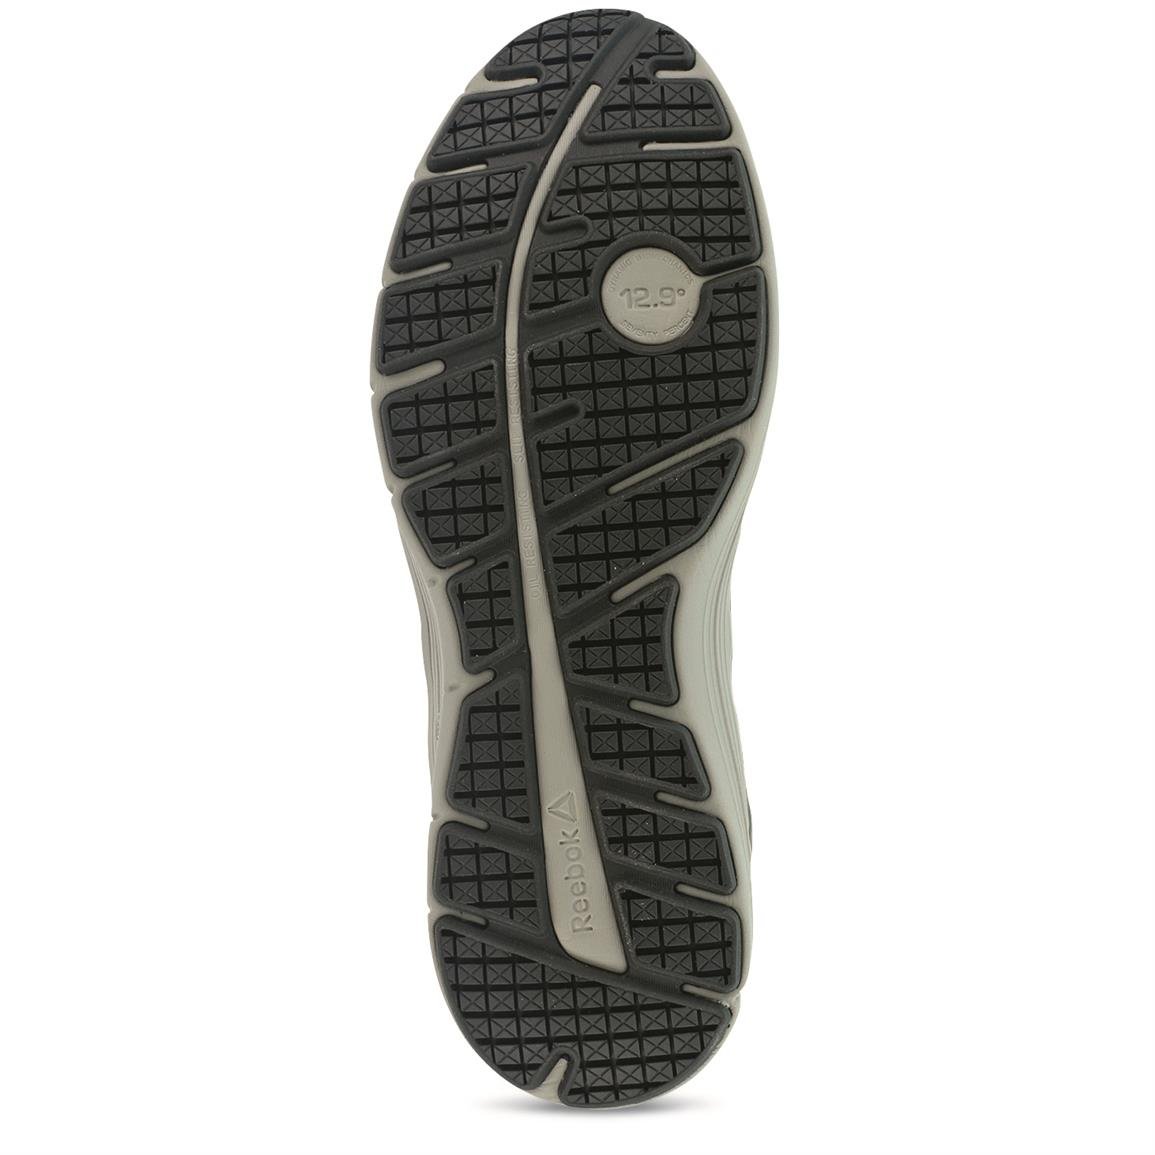 Rubber outsole with max slip resistance